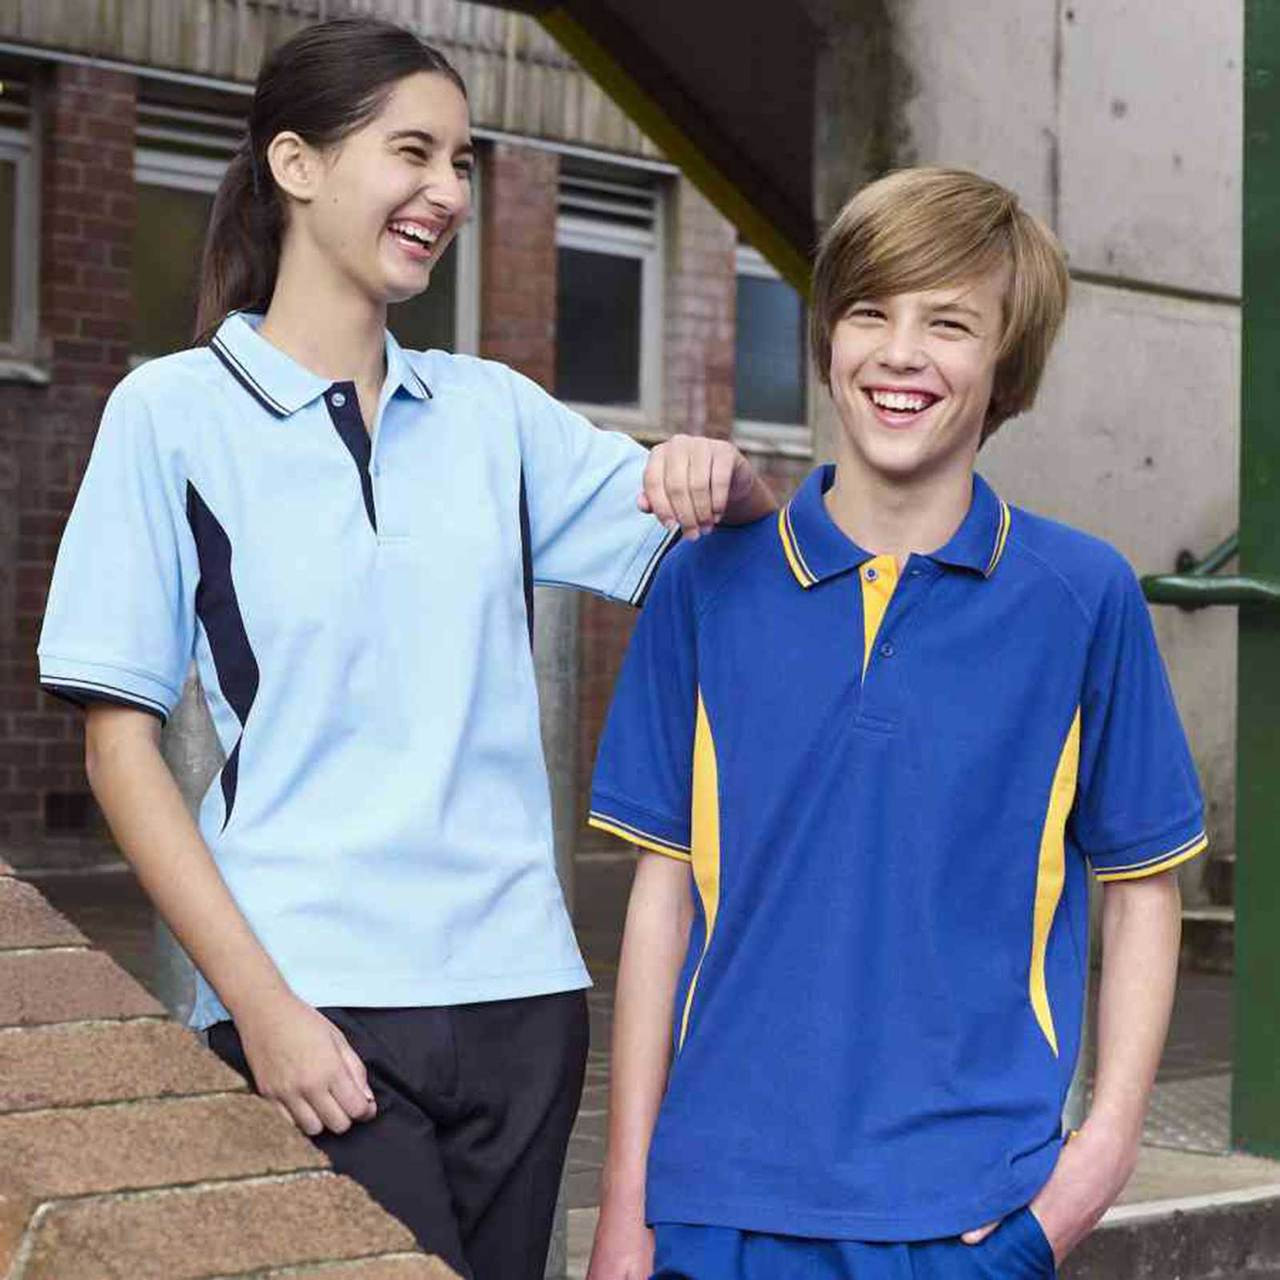 81a7e5aa1 SPLICE | kids polo shirts contrast raglan panels | buy online |  blankclothing.com.au